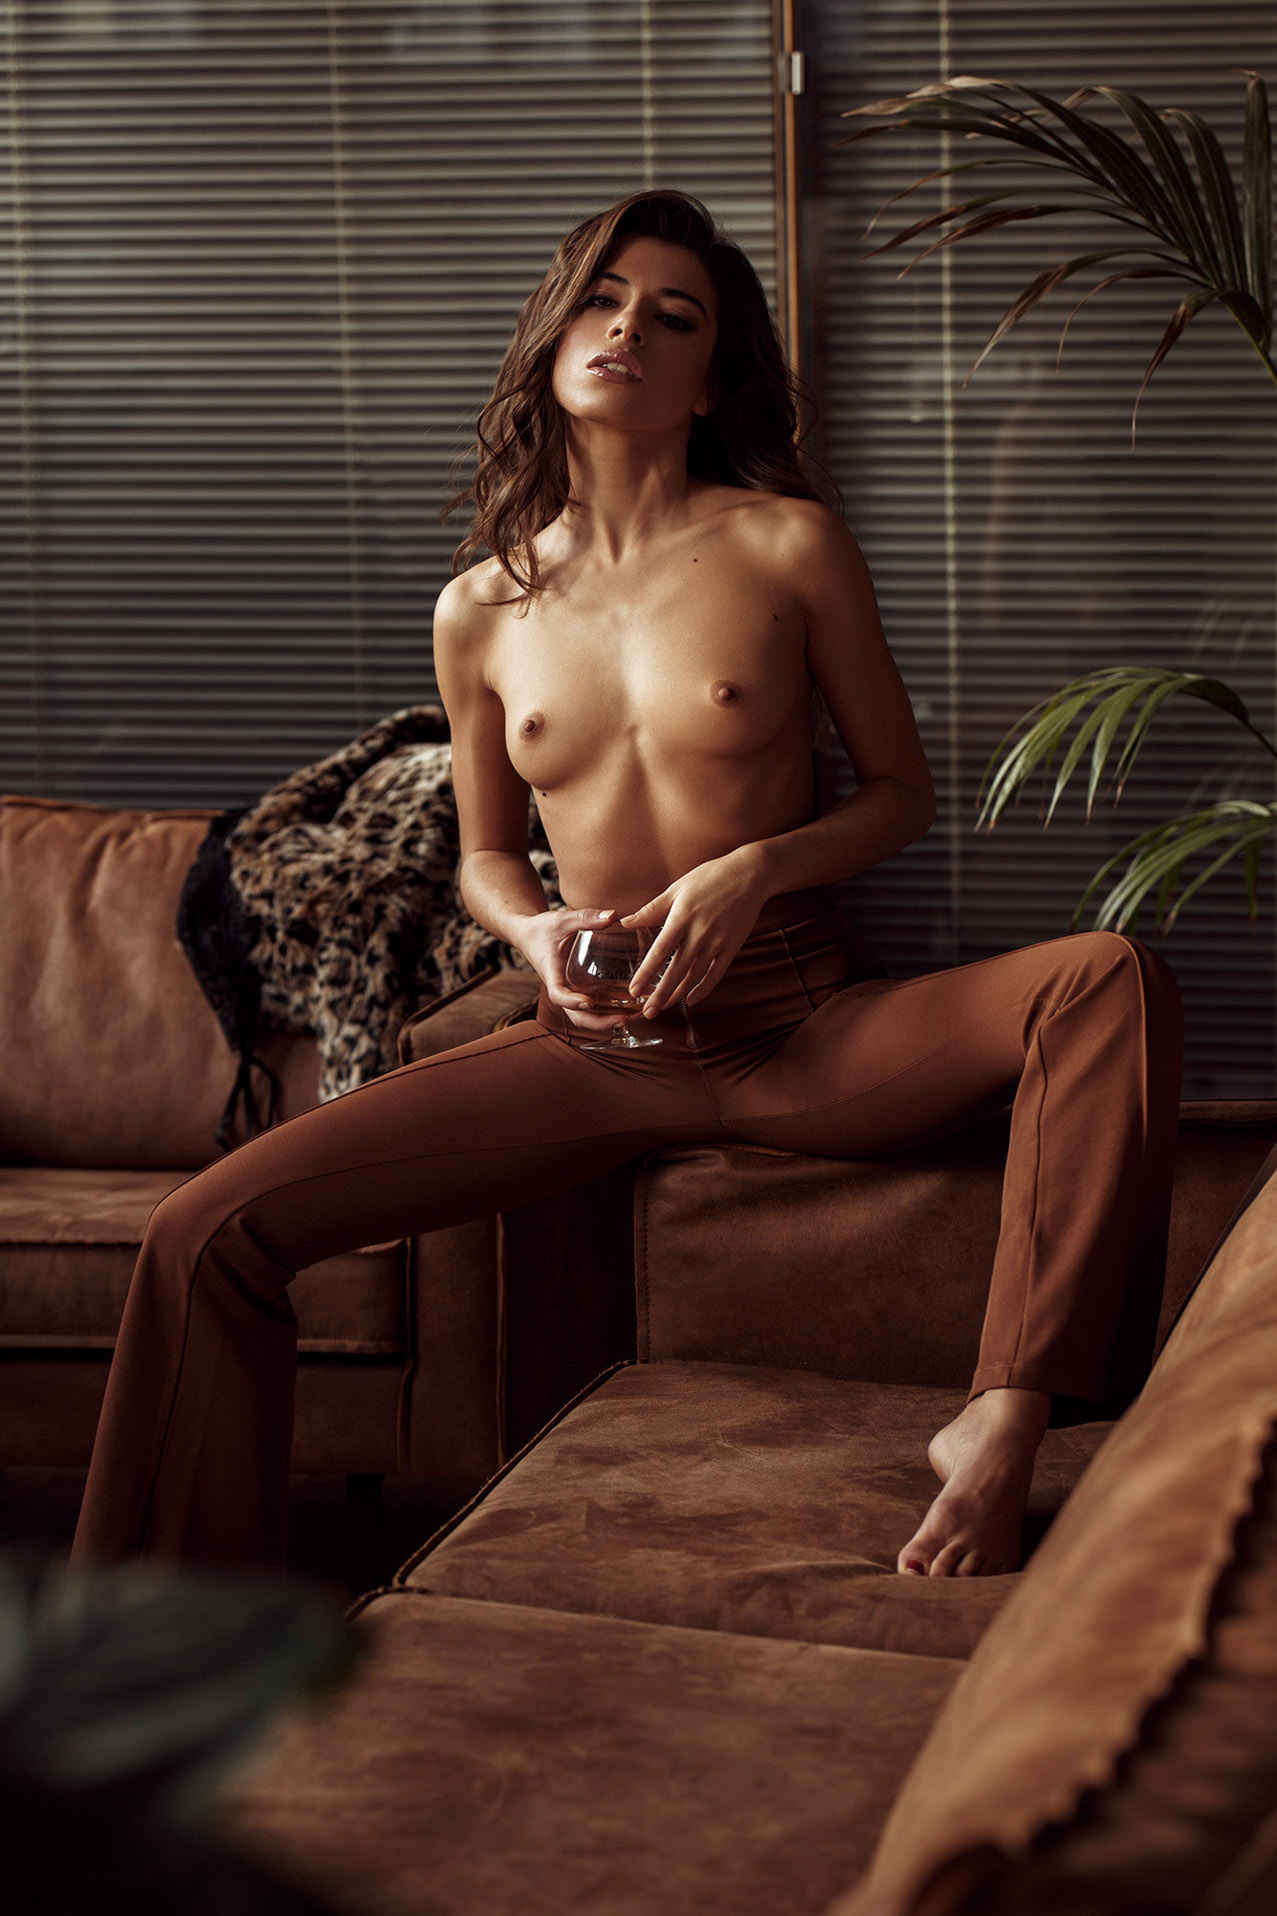 Chiara Bianchino nude by Hannes Walendy